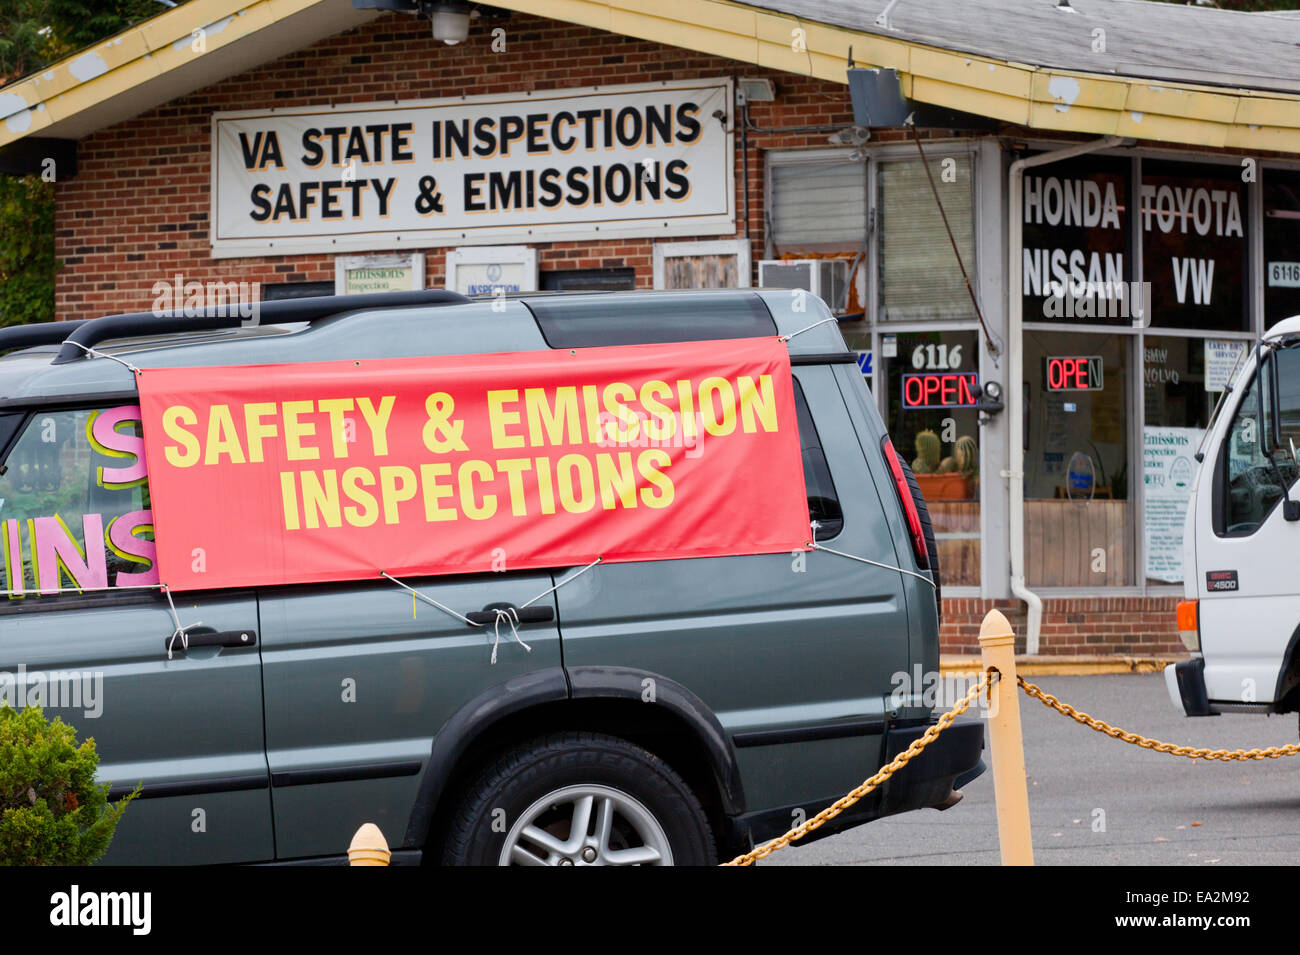 Virginia state safety and emission inspections banner at service station - Virginia USA - Stock Image